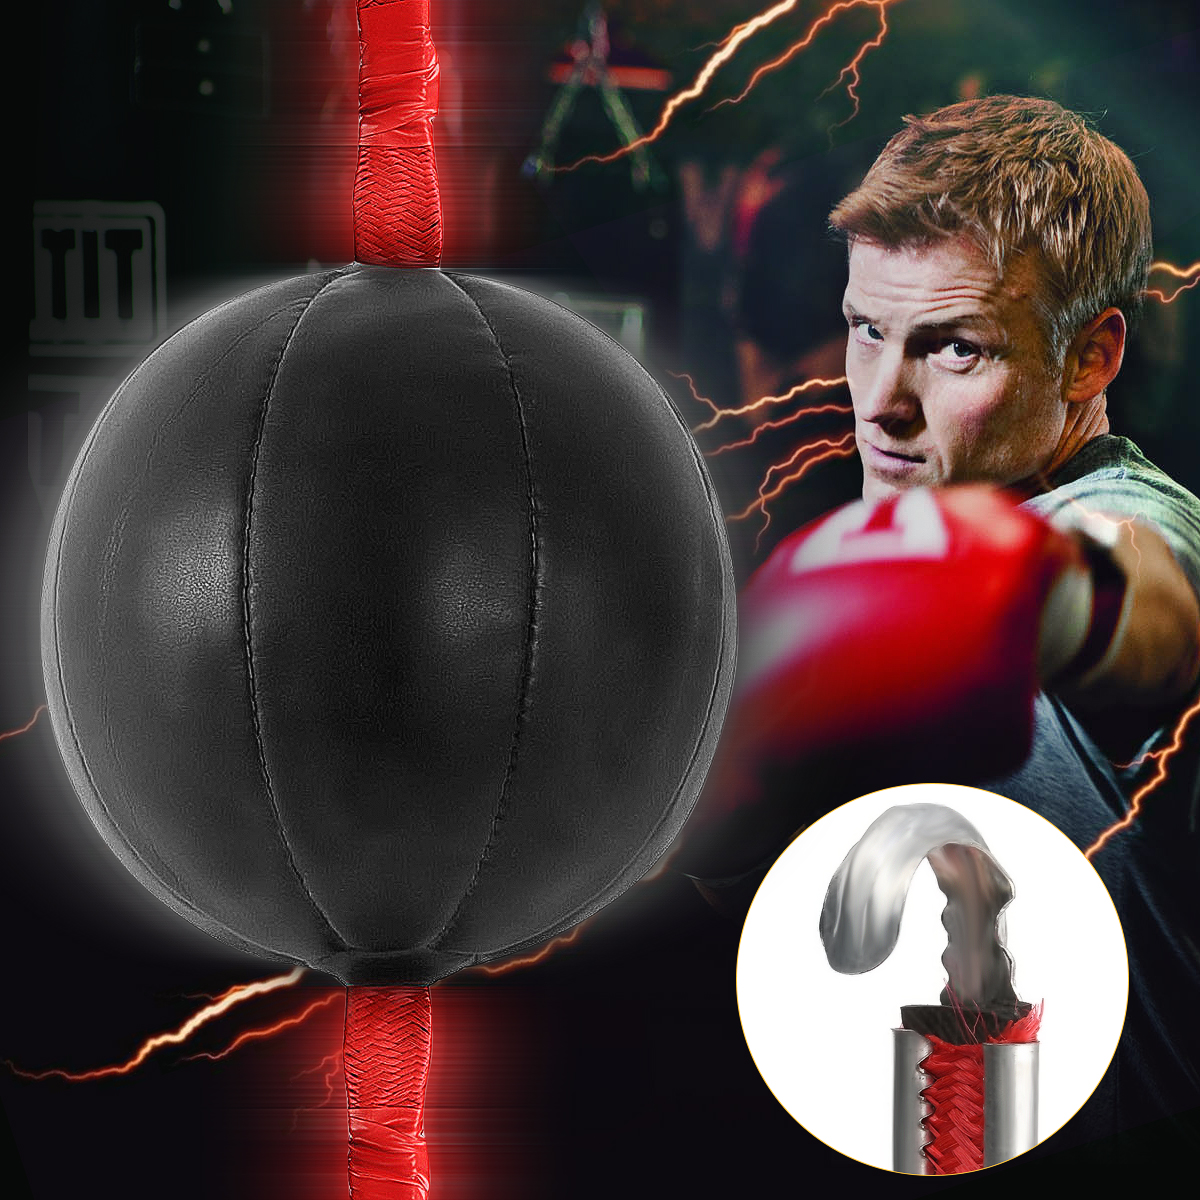 Black Speed Ball Boxing Double End MMA Boxing Training speedbag Gear Workout Punching Bag Speed Ball Bag with Strap